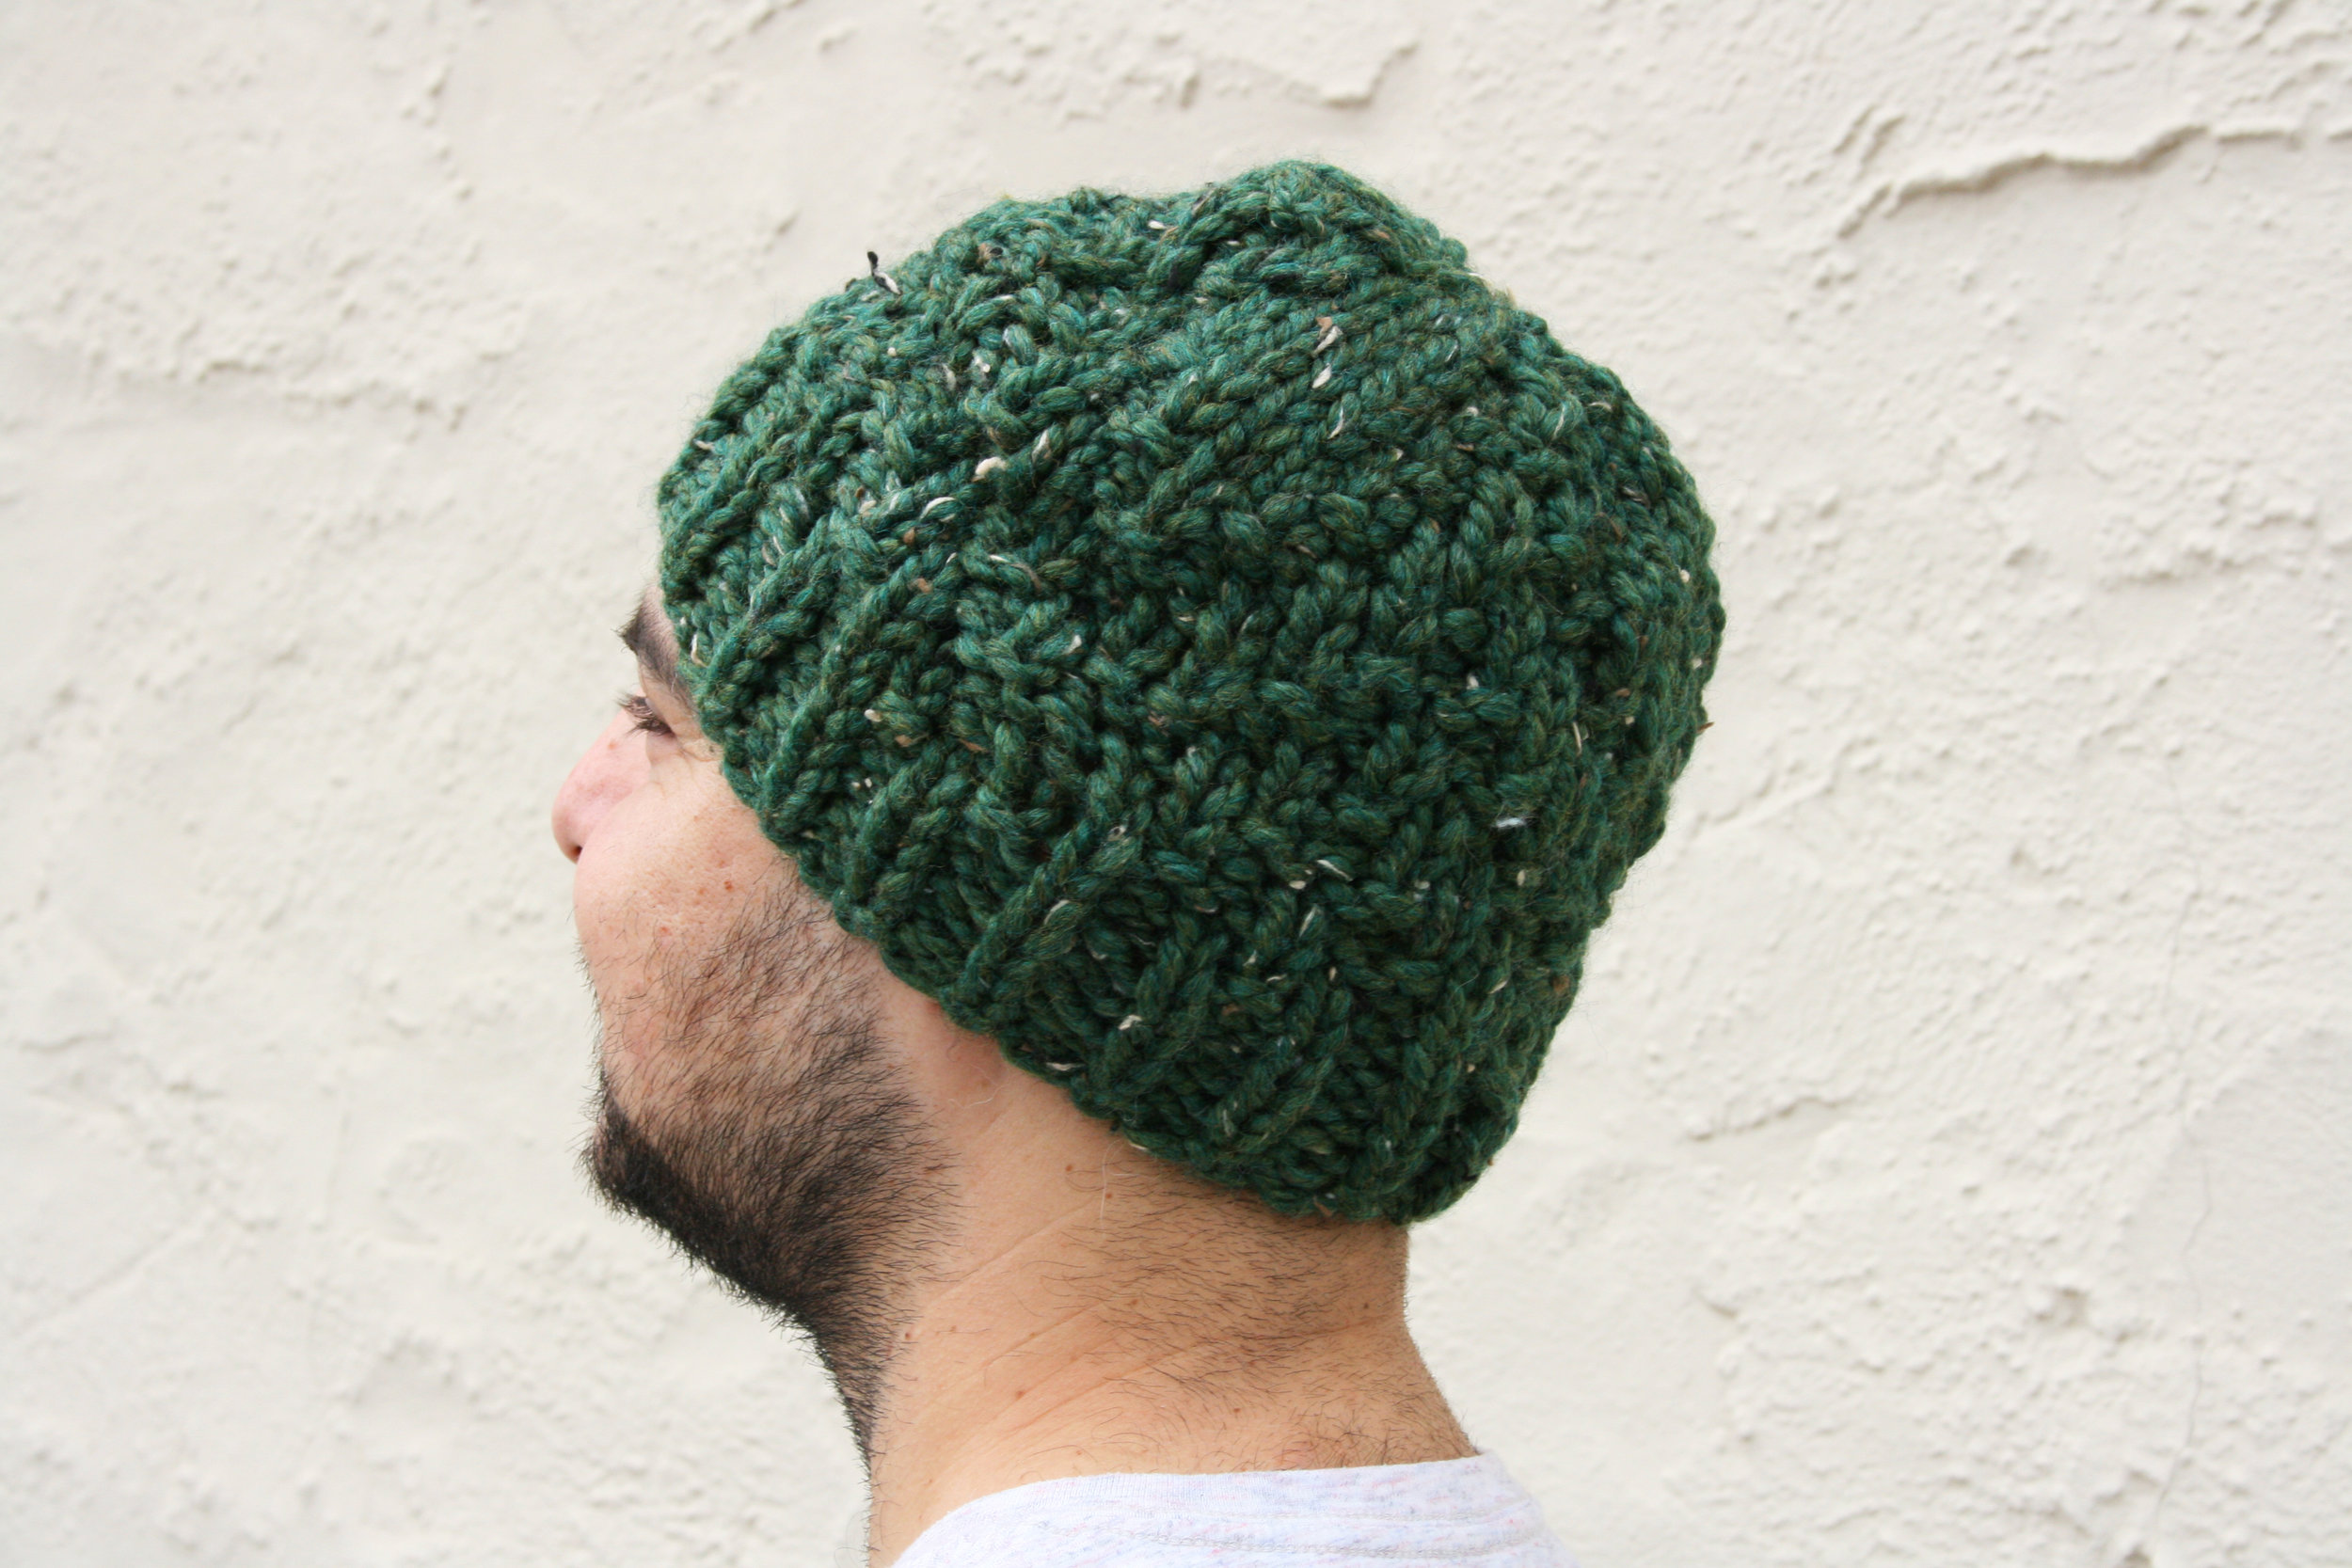 Silicate-Reversible-Chunky-Knit-Beanie-Knitting-Pattern-by-elisemade